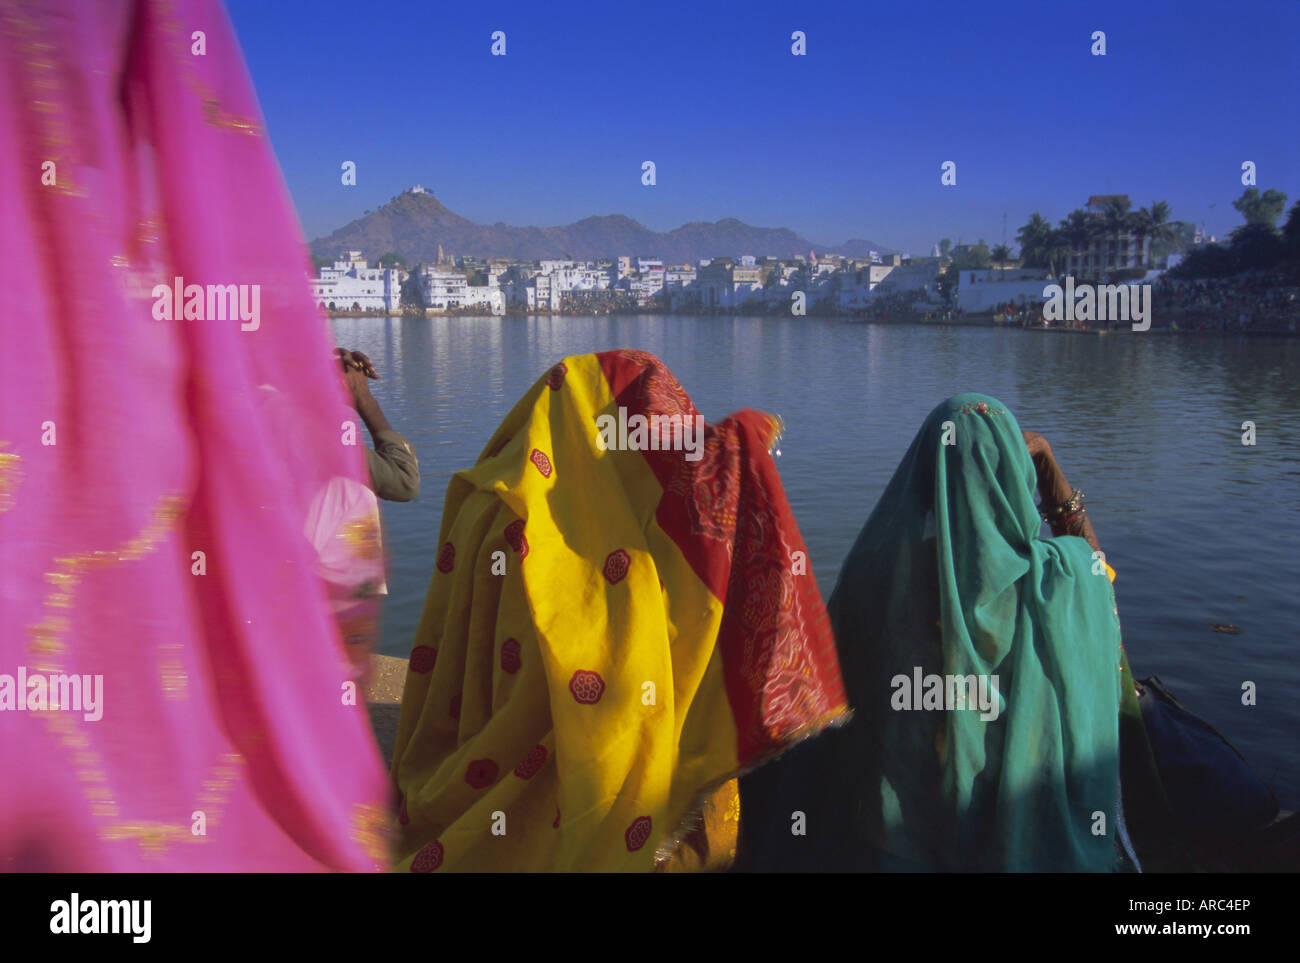 Women at the Hindu pilgrimage to holy Pushkar Lake, Pushkar, Rajasthan State, India, Asia - Stock Image